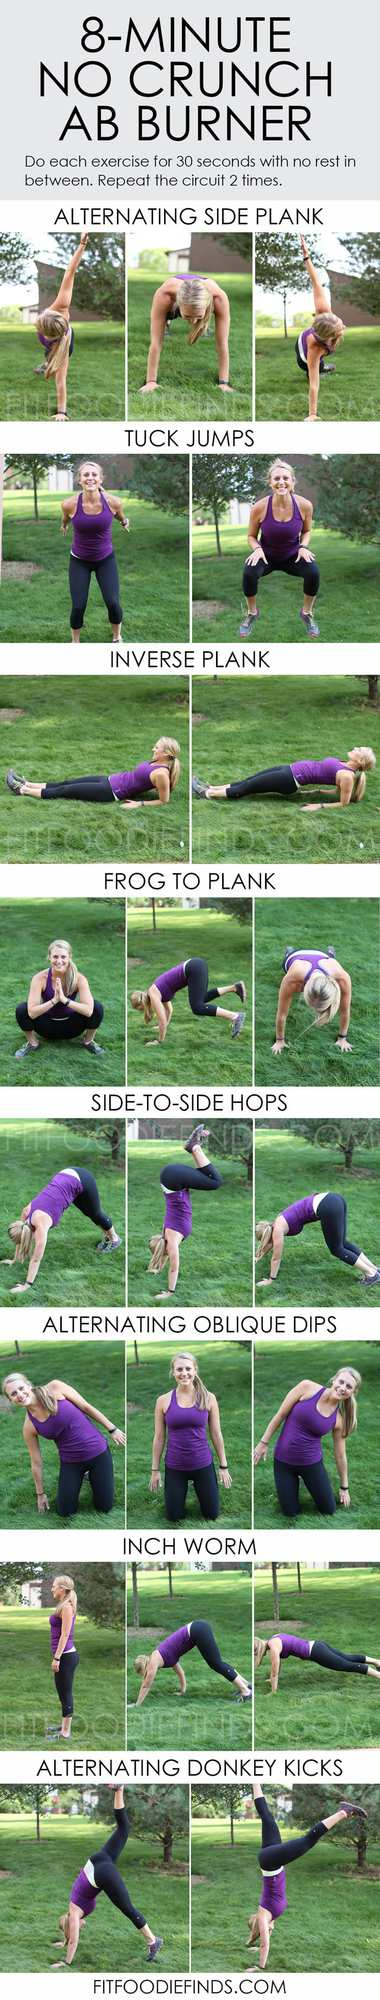 Got 8 minutes? End your workout with this challenging ab workout that doesn't include any classic crunches!